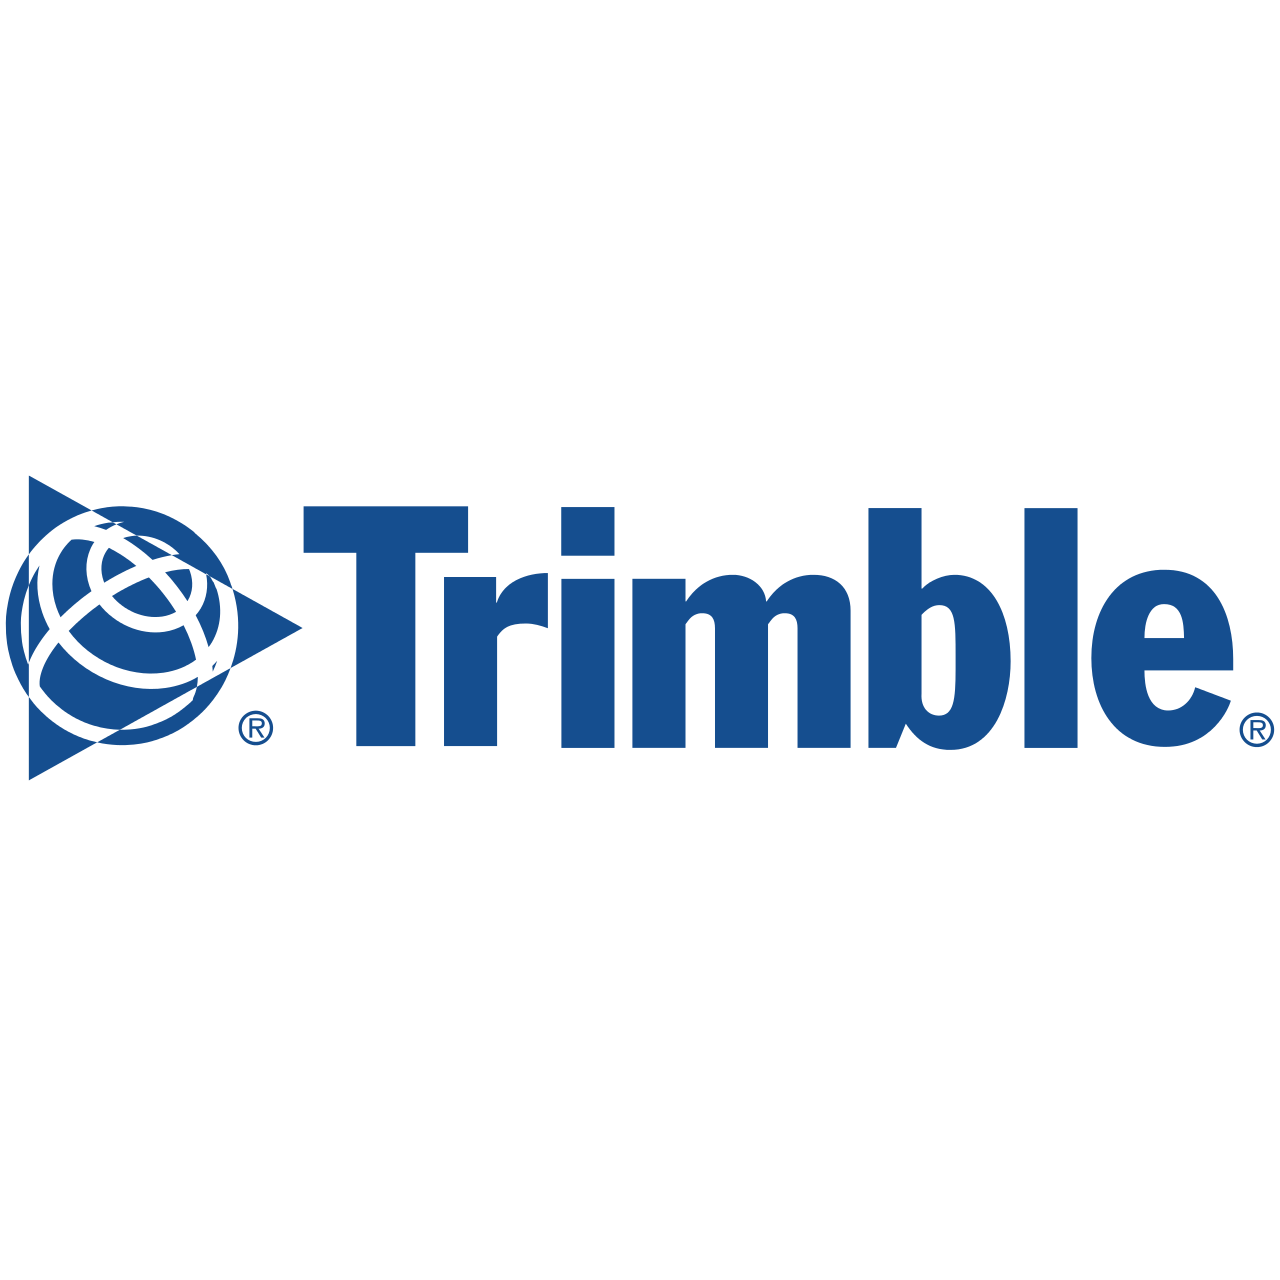 Trimble_logo copy